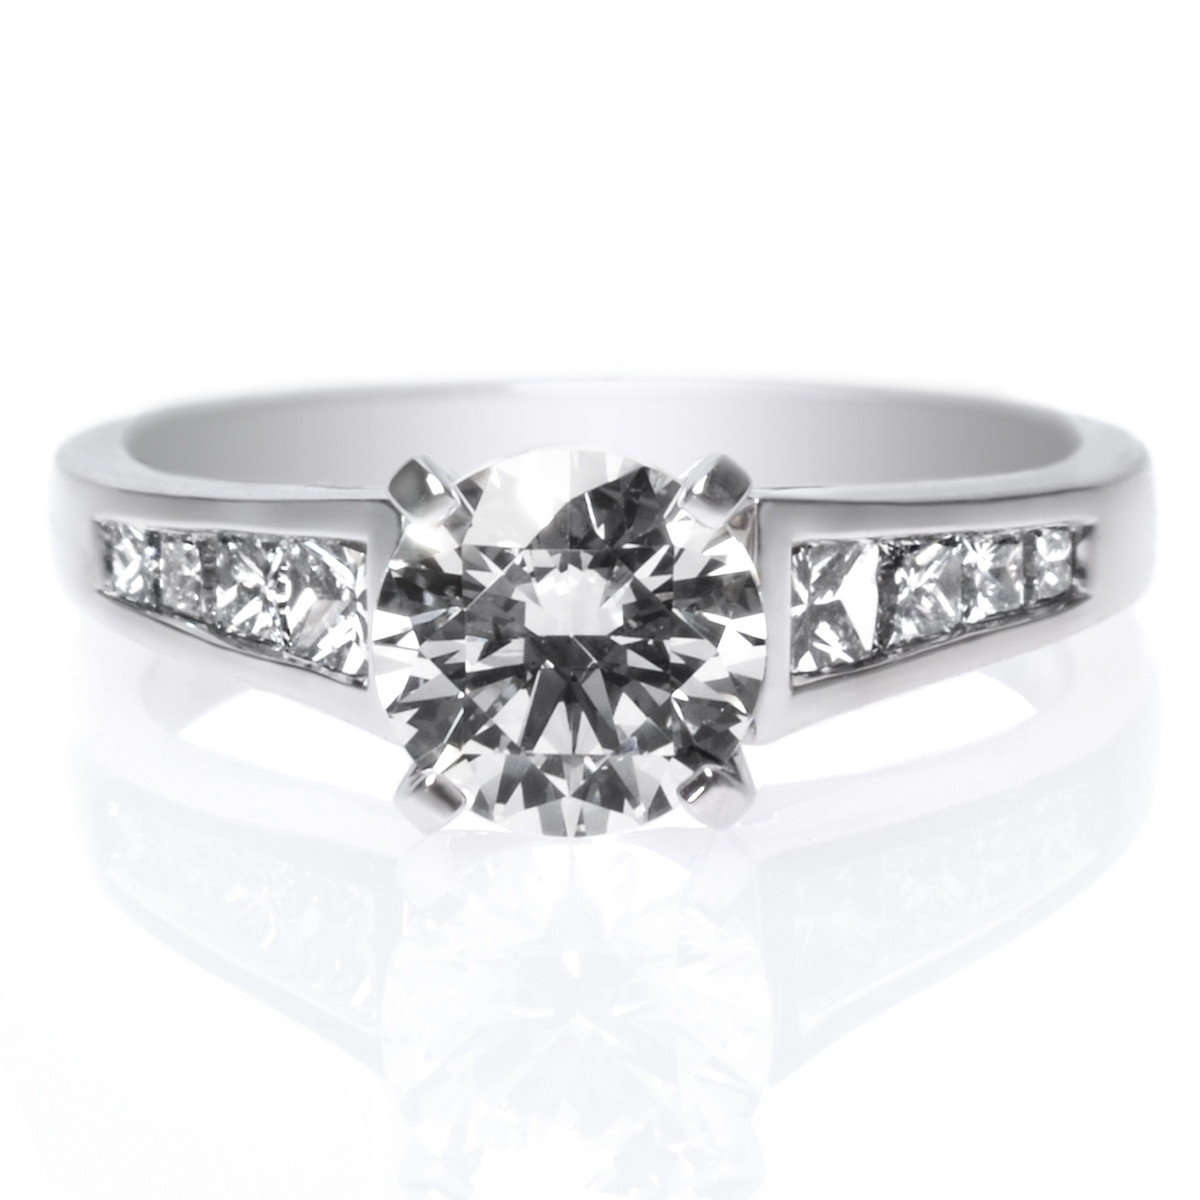 18K White Gold Tapered Princess Cut Channel Set Diamond Engagement Ring